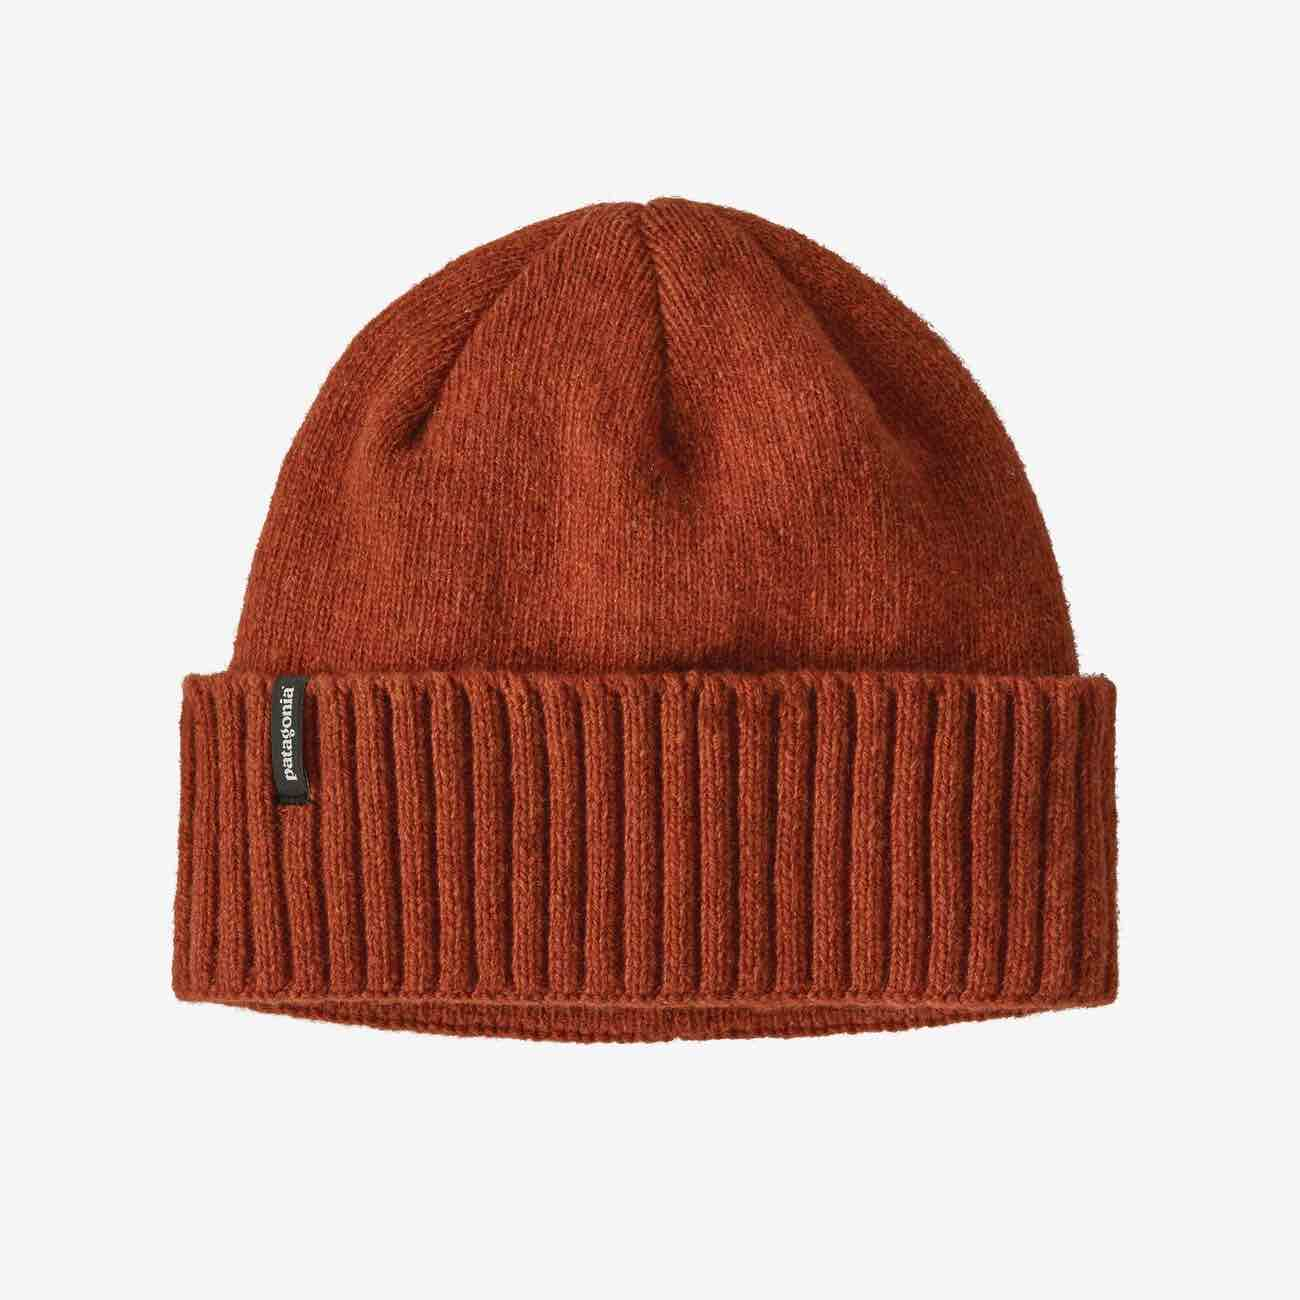 PATAGONIA BRODEO BEANIE - DESERT ORANGE